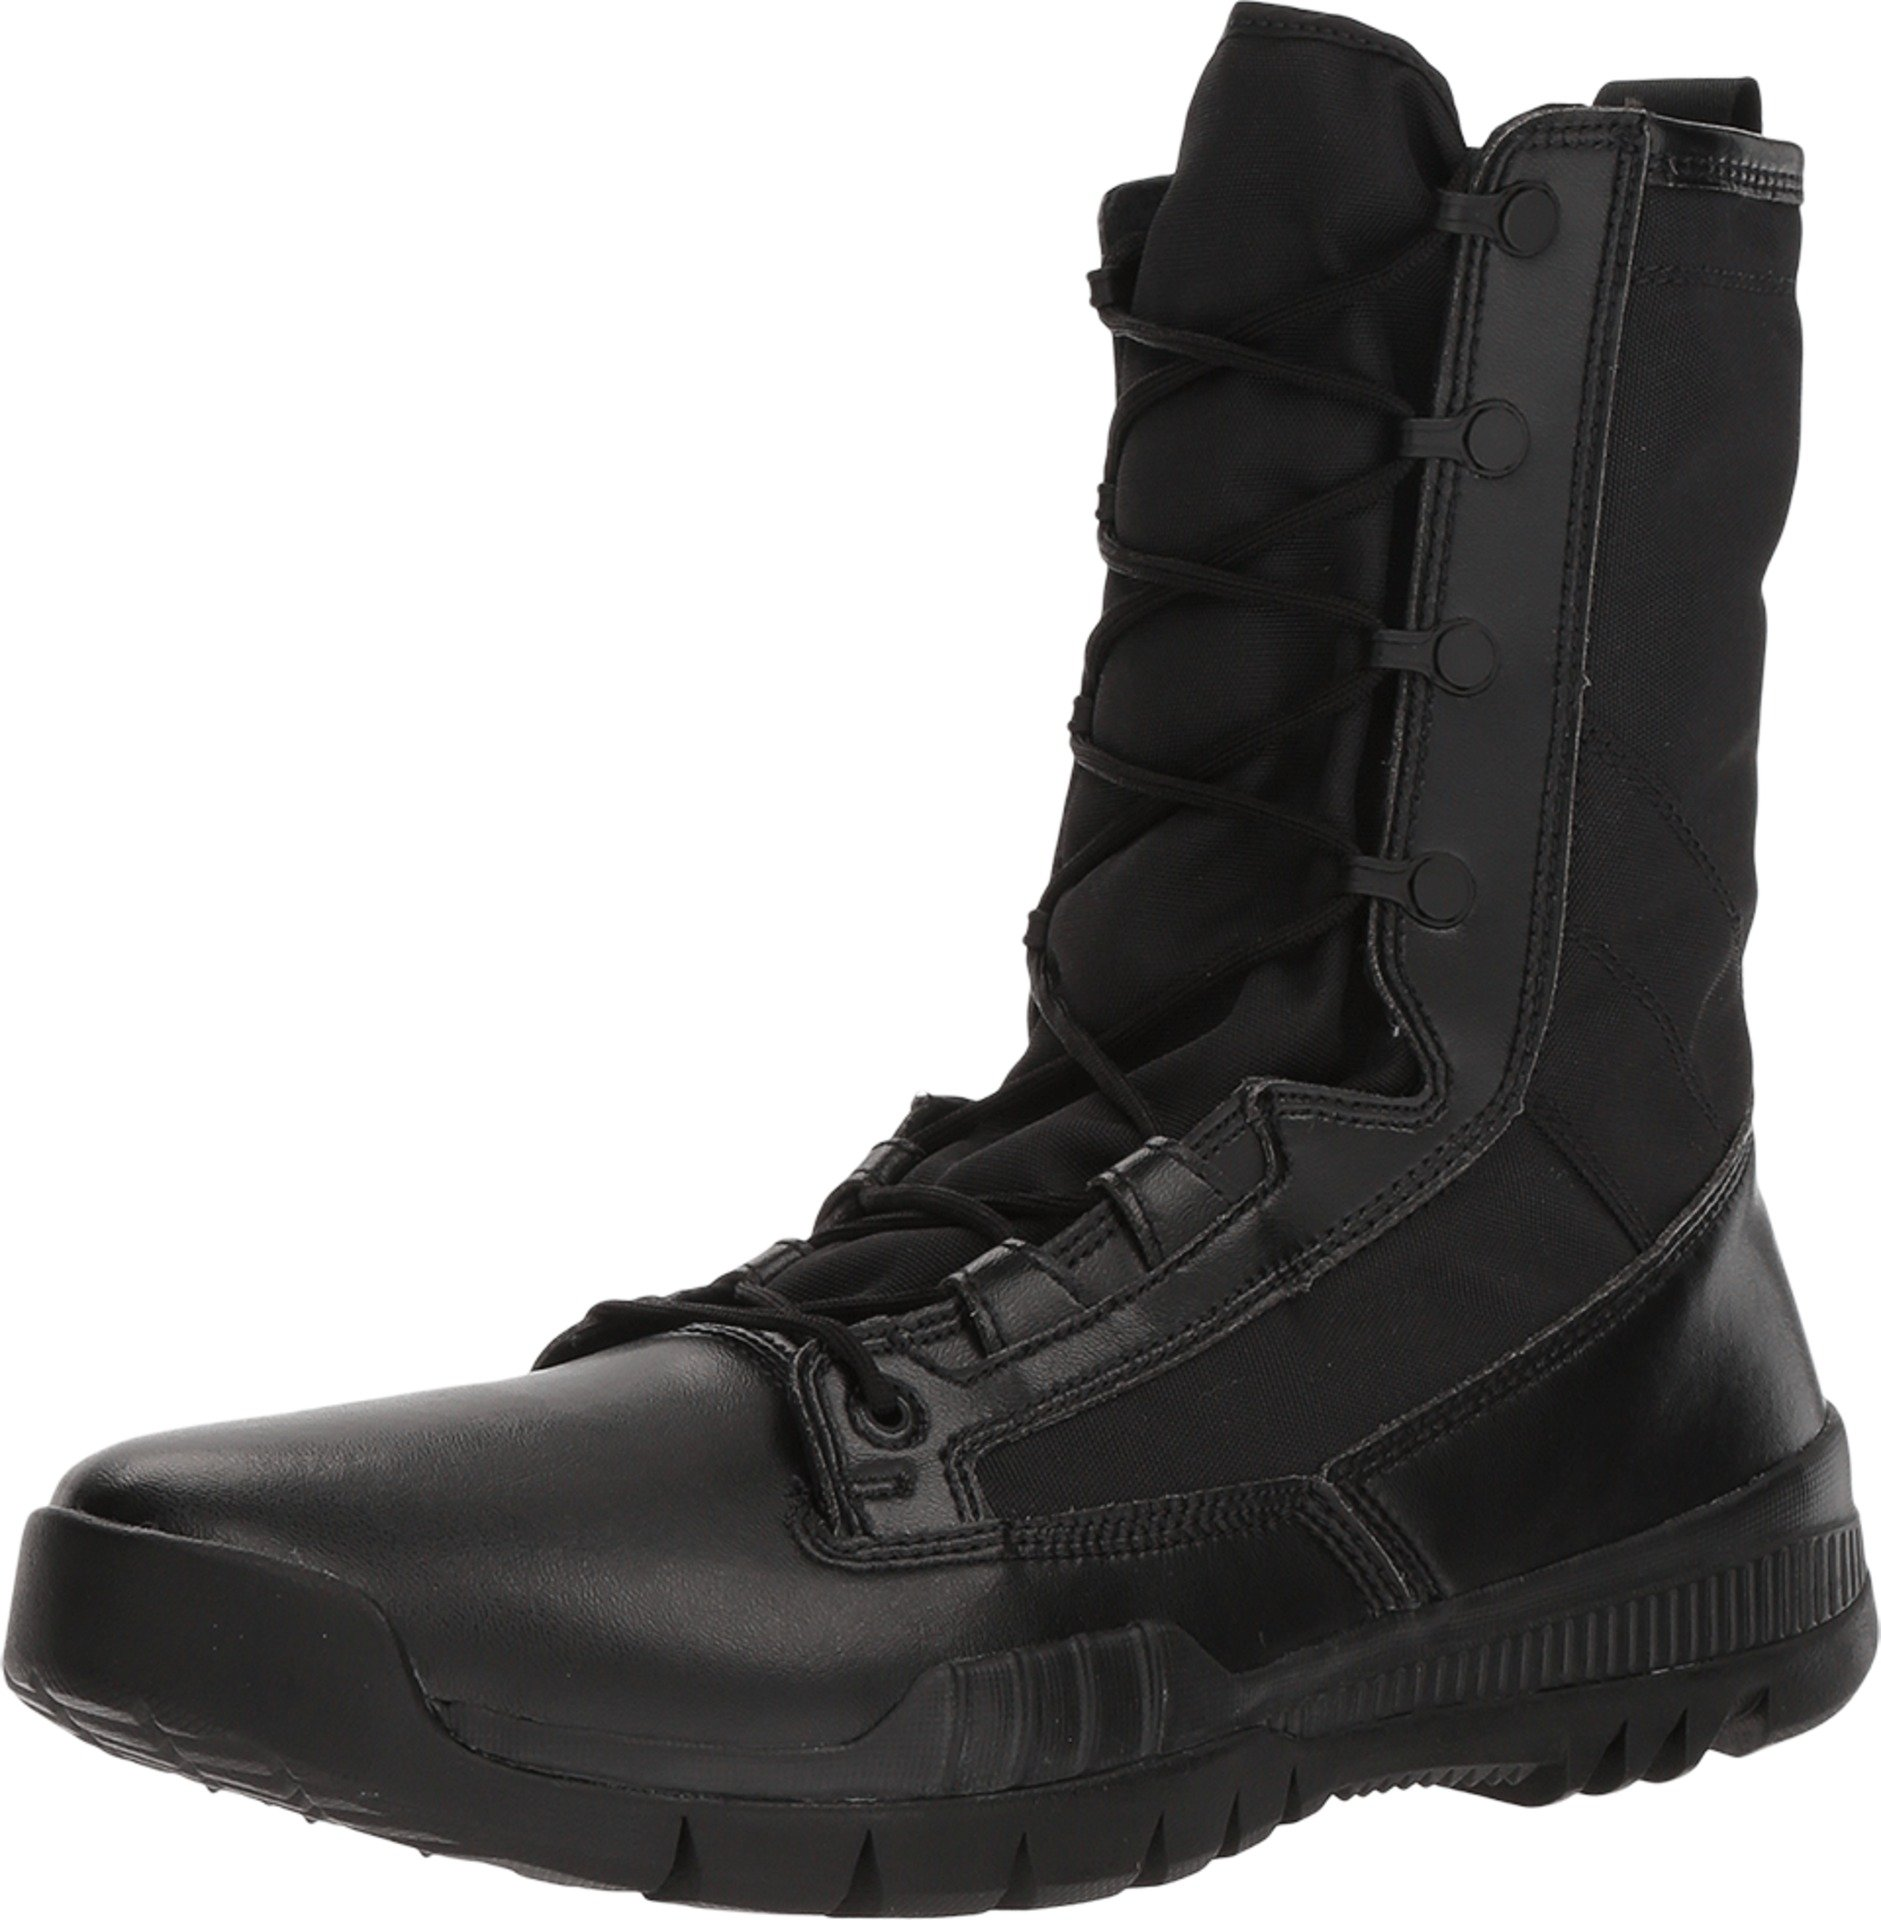 Nike SFB Field 8'' 631371-090 Black Men's Tactical Police Leather Boots (15) (15, Black/Black)